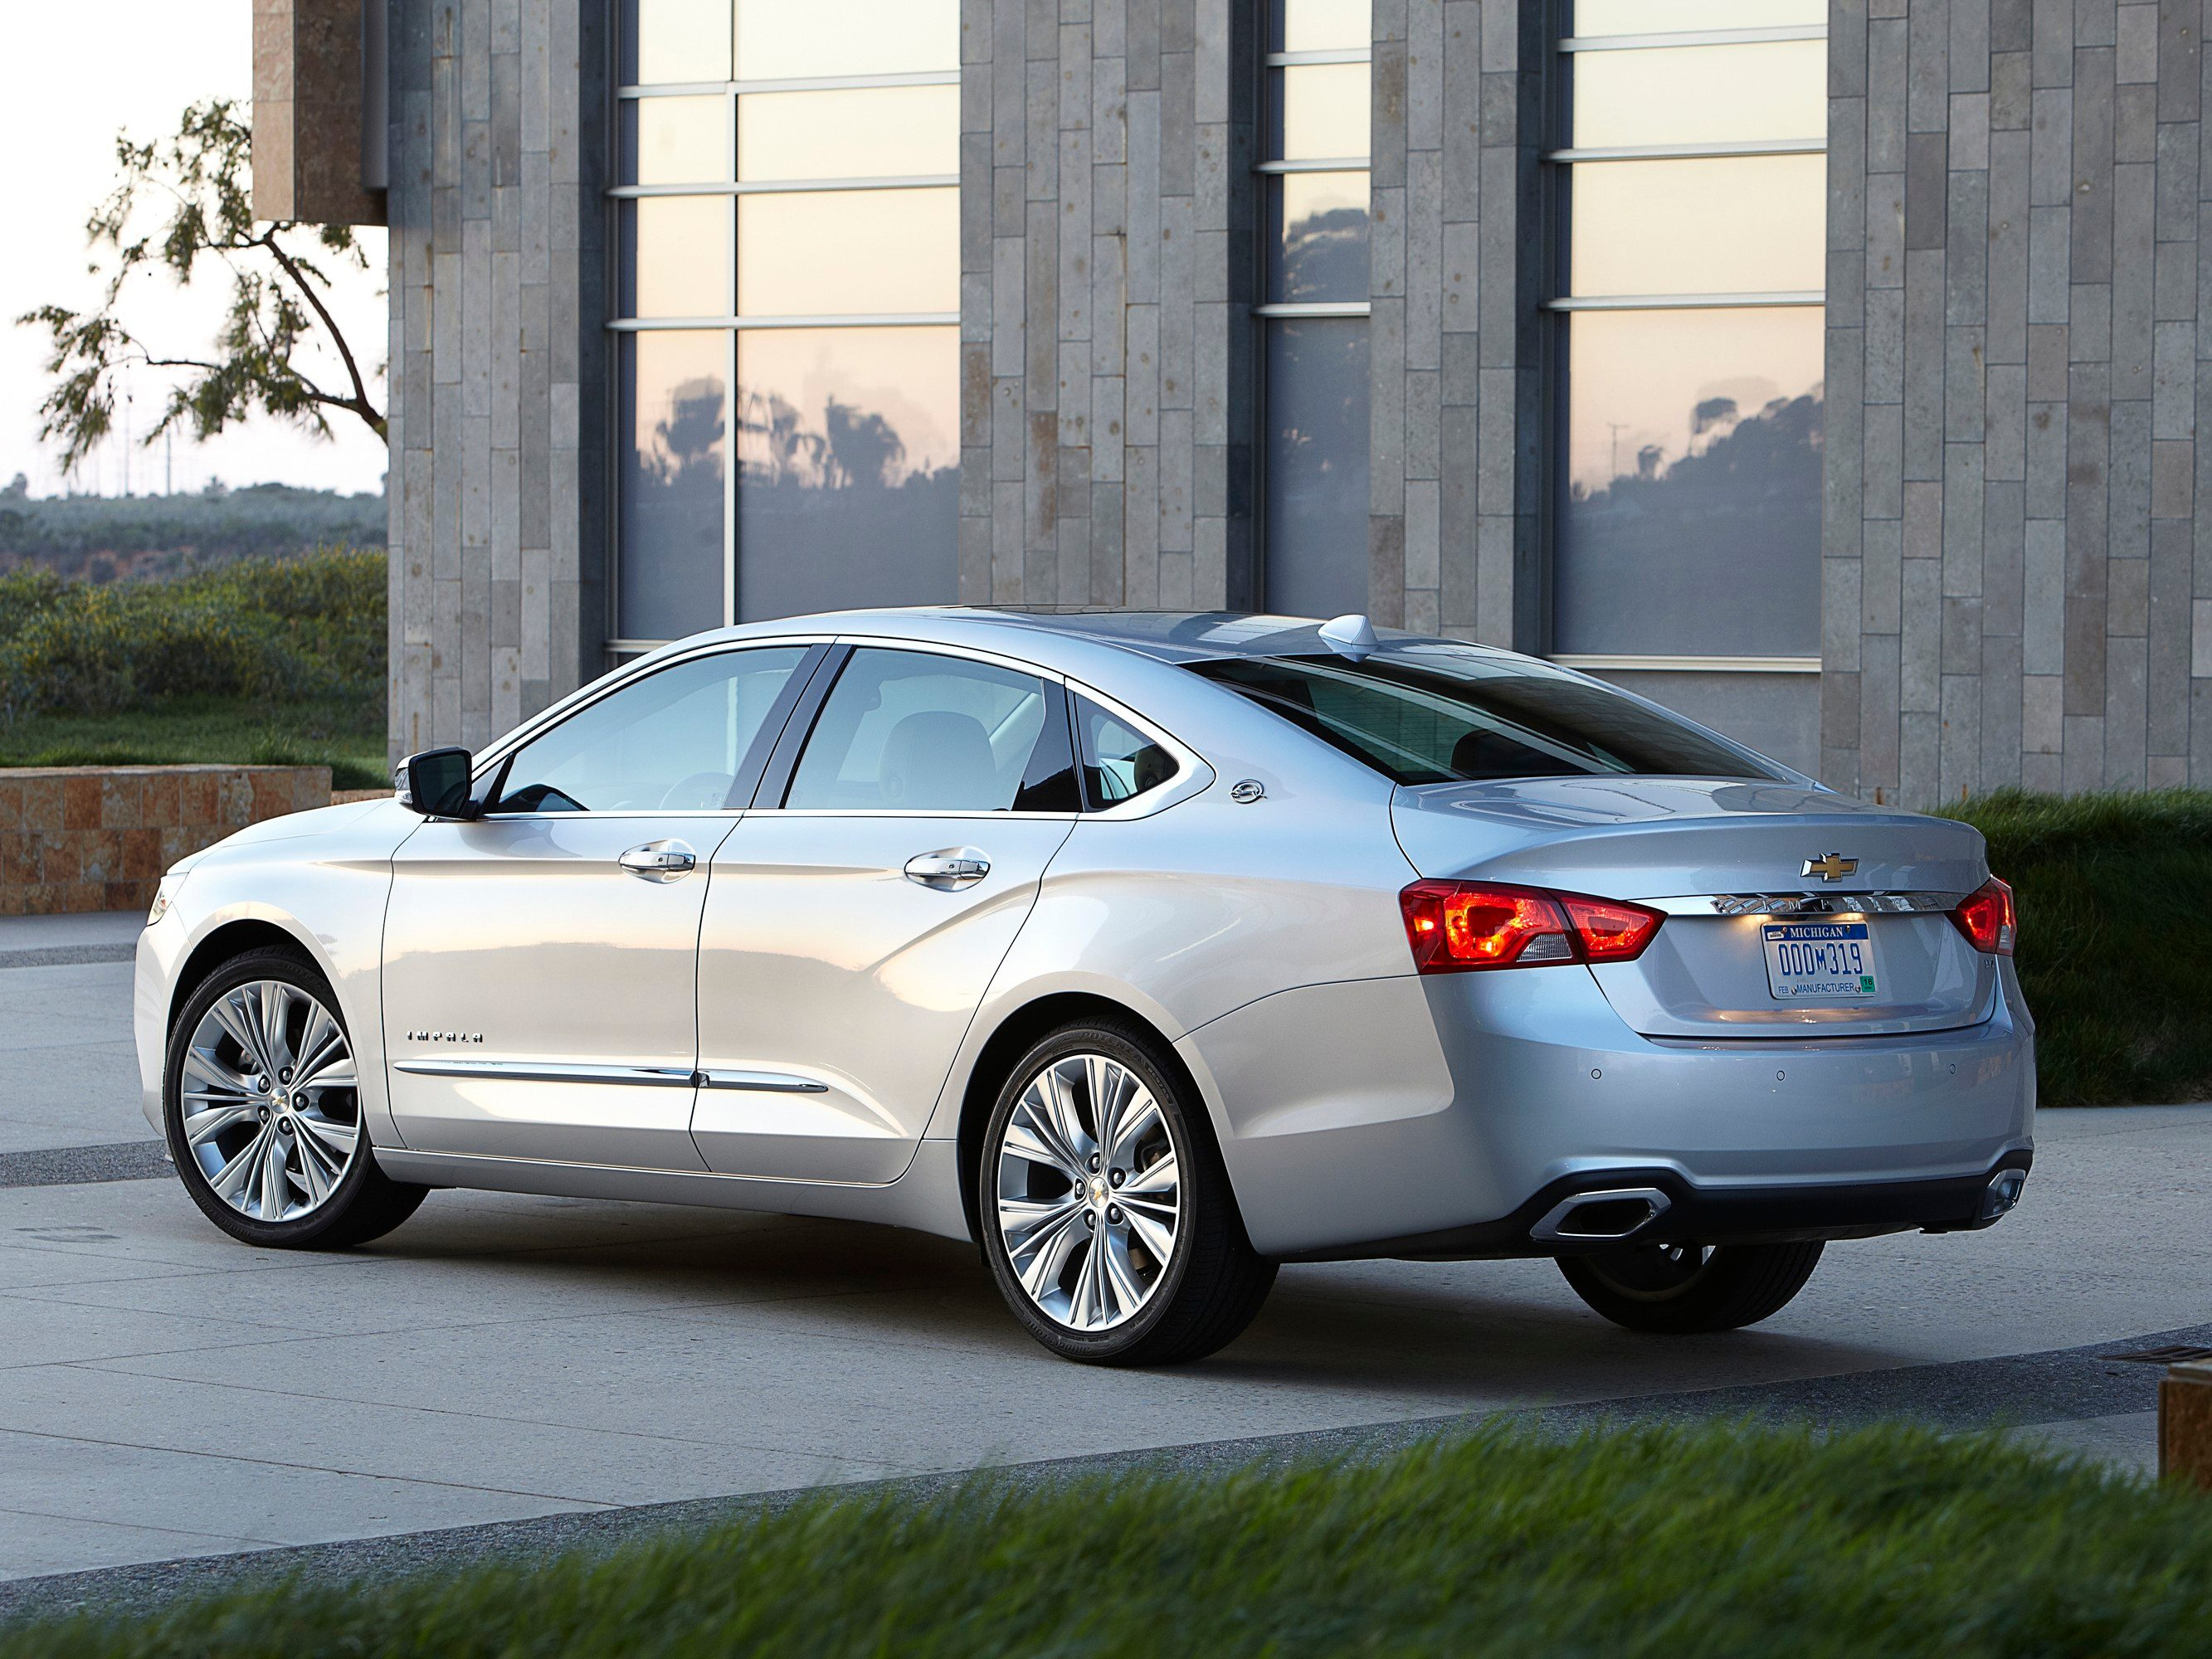 4. The new Chevrolet Impala combines power and fuel-efficiency.